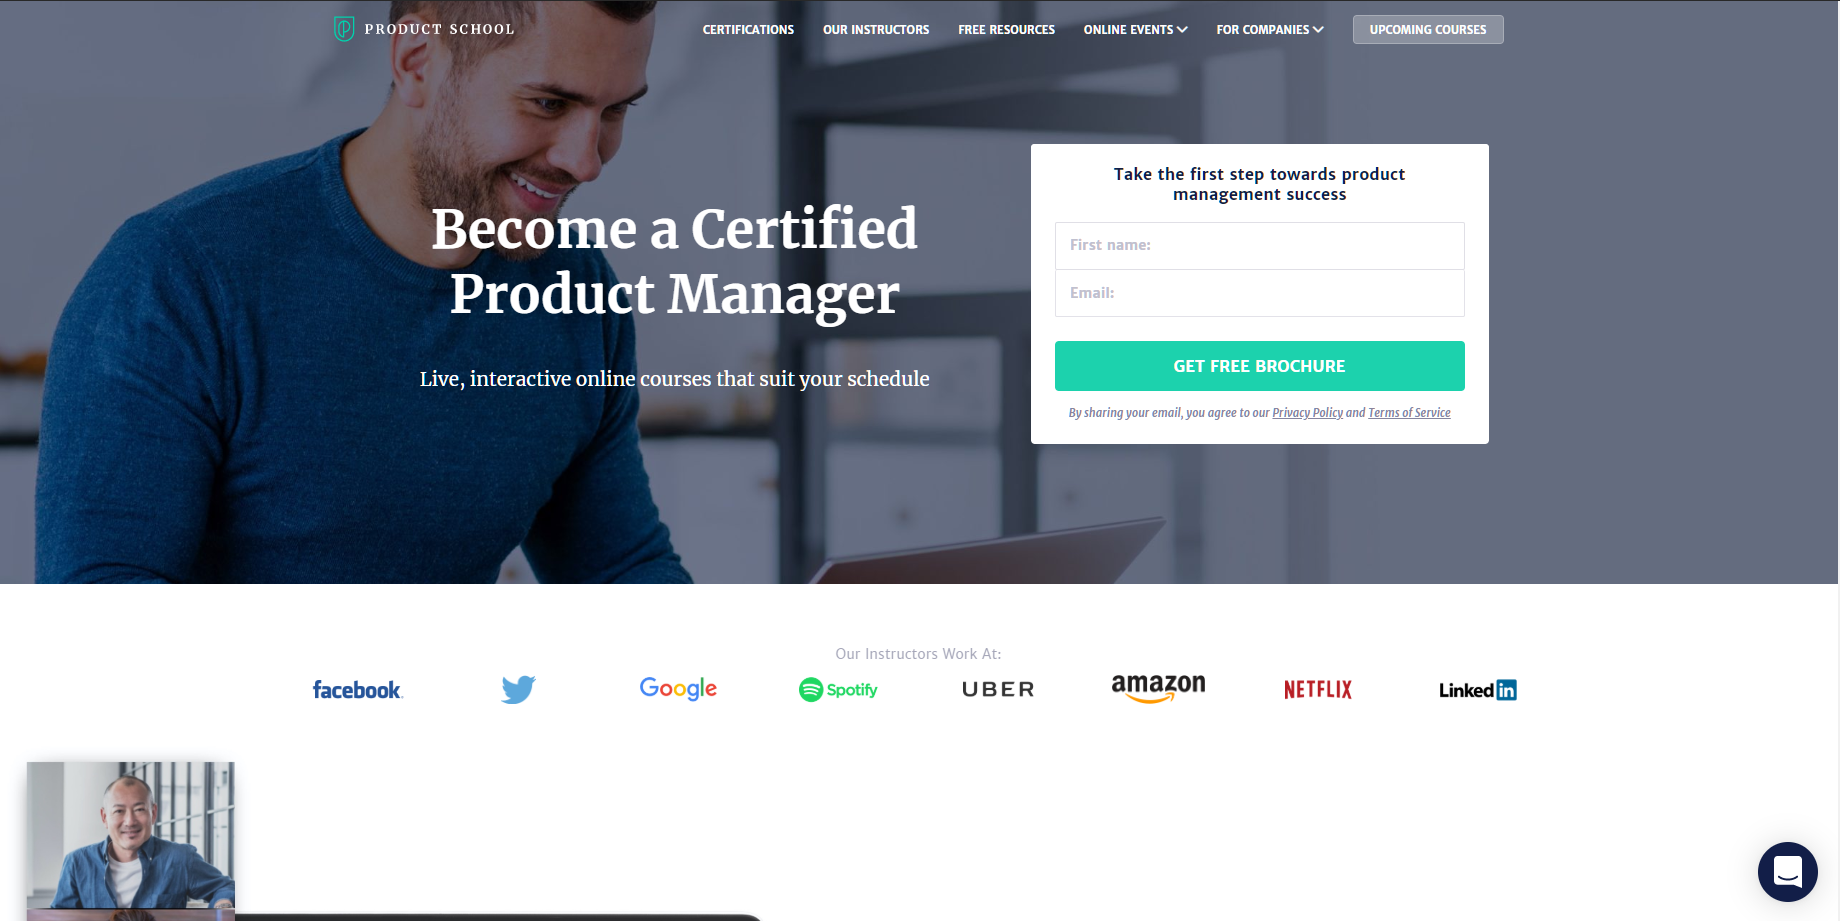 product school certification